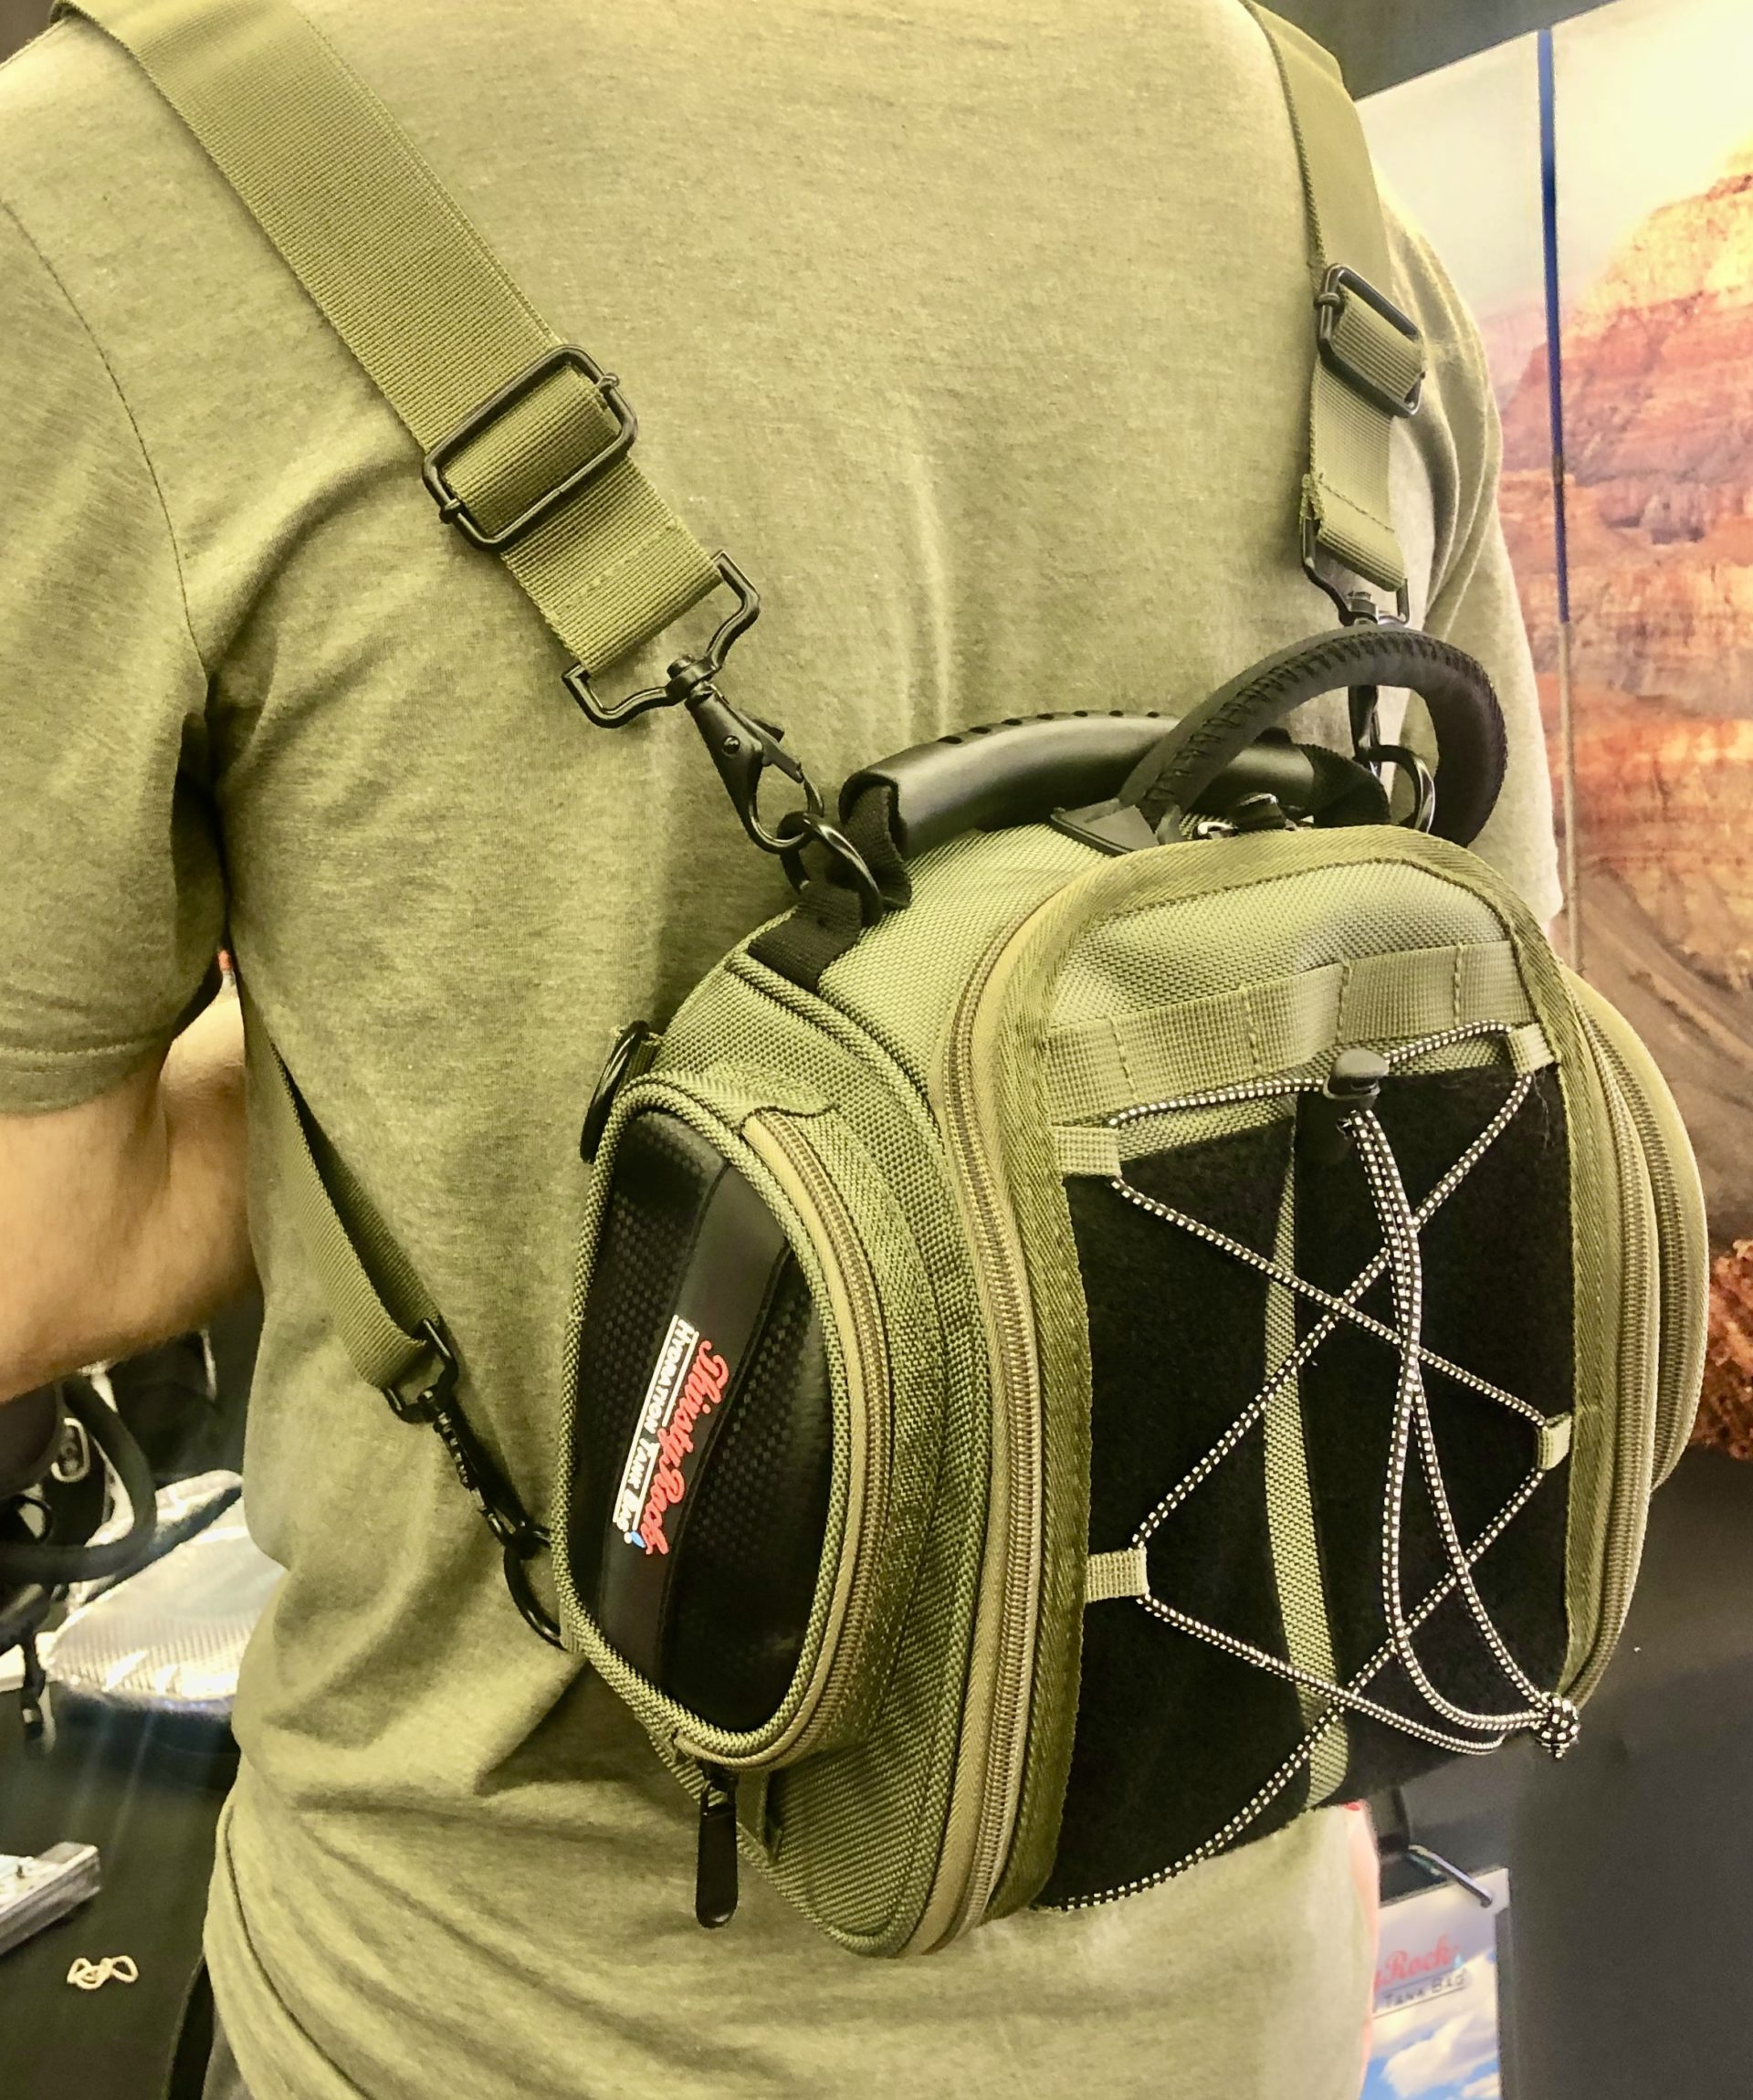 OffRoad Hydration Tank Bag (Military Green) with backpack straps